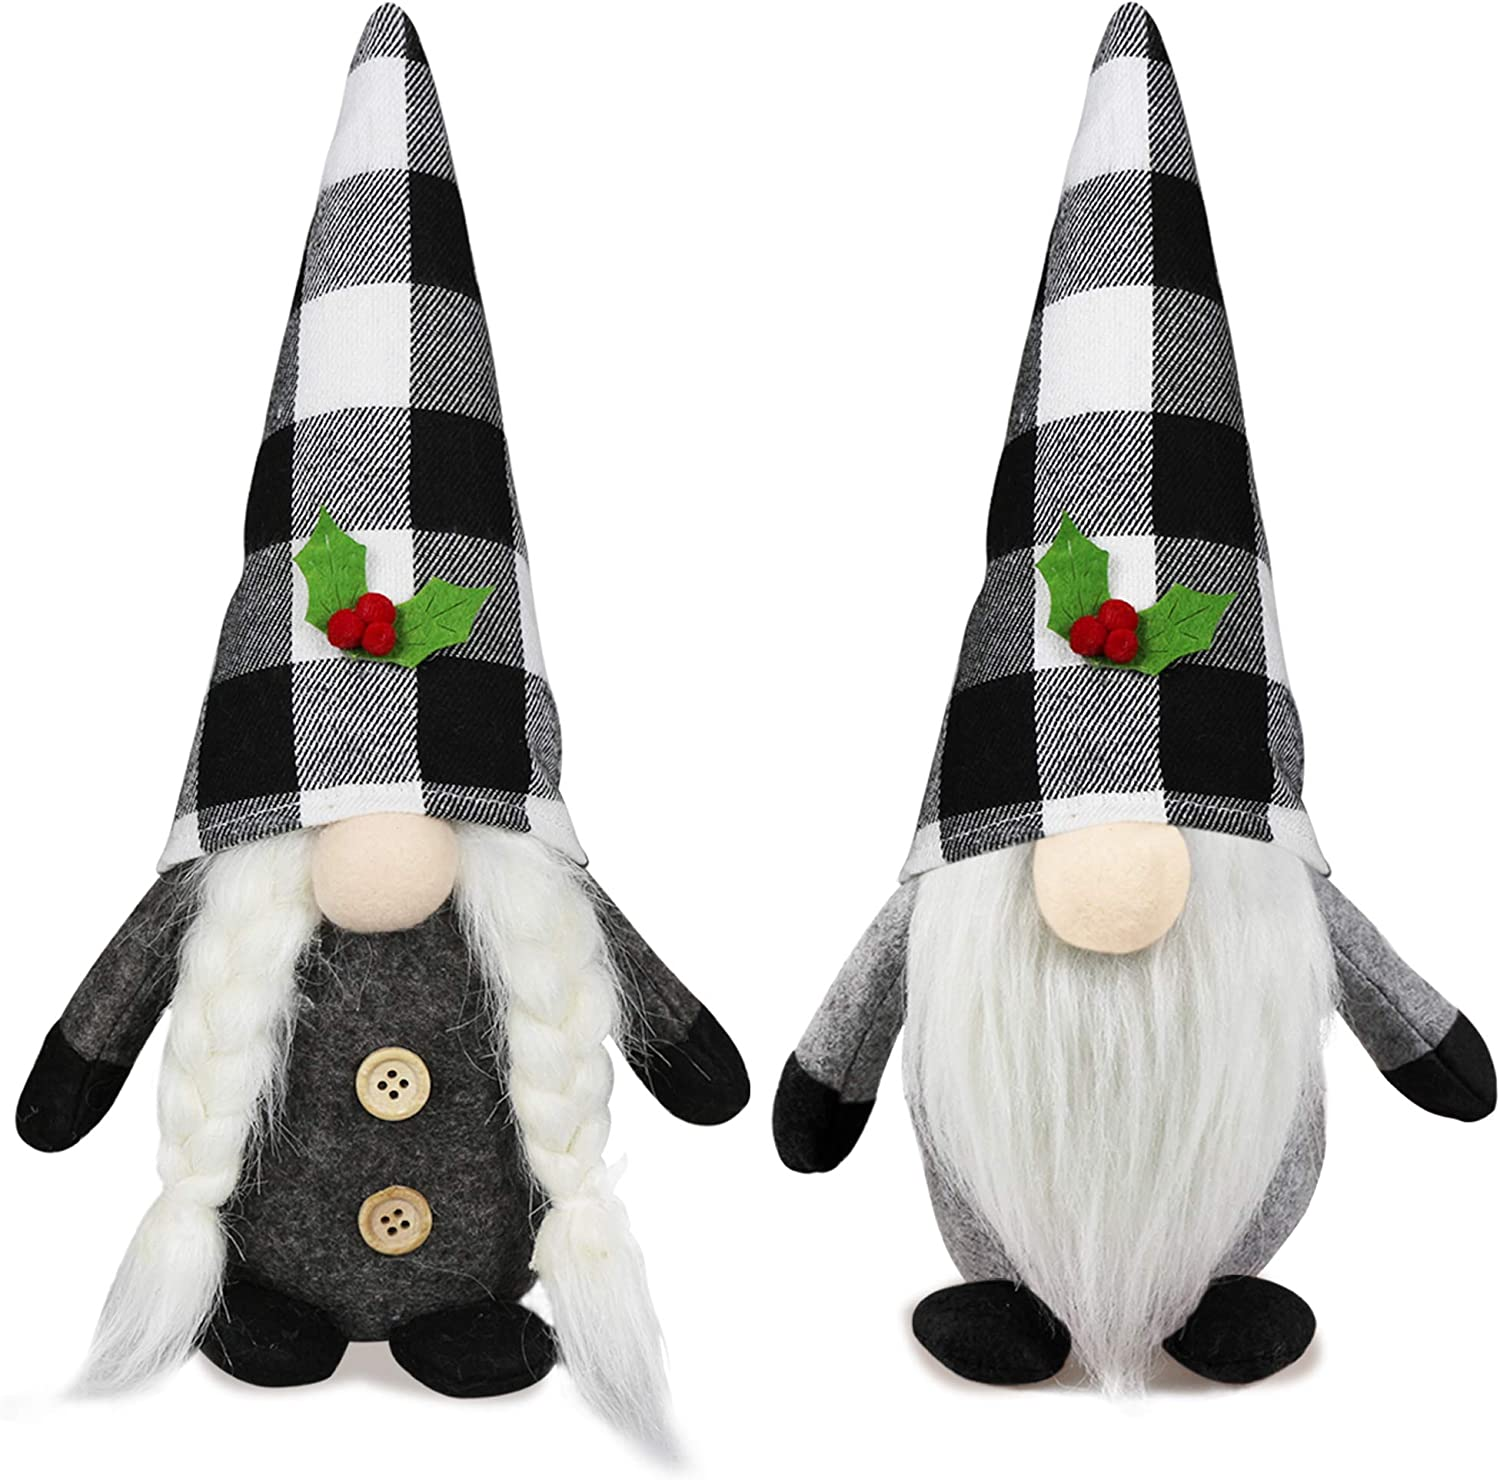 2Pcs Christmas Gnomes Plush Set- Christmas Decorations - Mr and Mrs Handmade Swedish Tomte Santa Decor - Christmas Holiday Elf Gnomes Decor Ornaments- Xmas Holiday Home Decor 11Inch